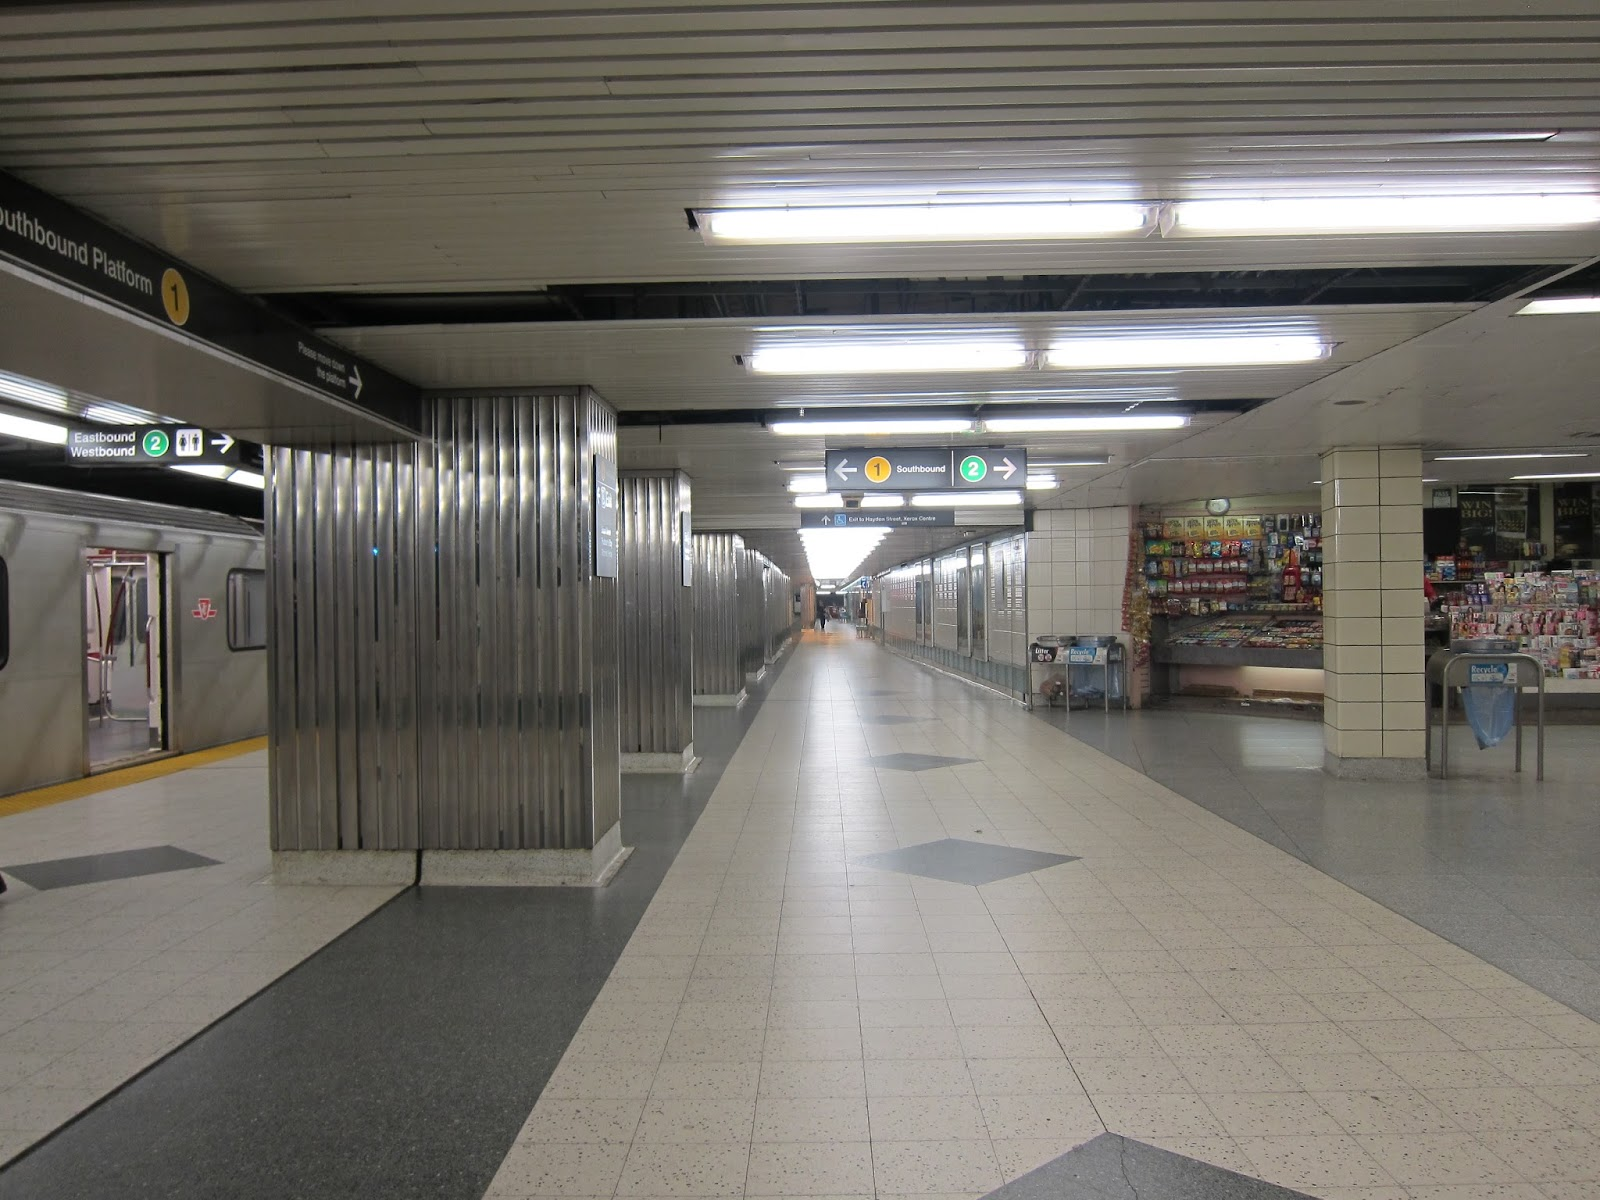 Bloor station's double-wide southbound platform